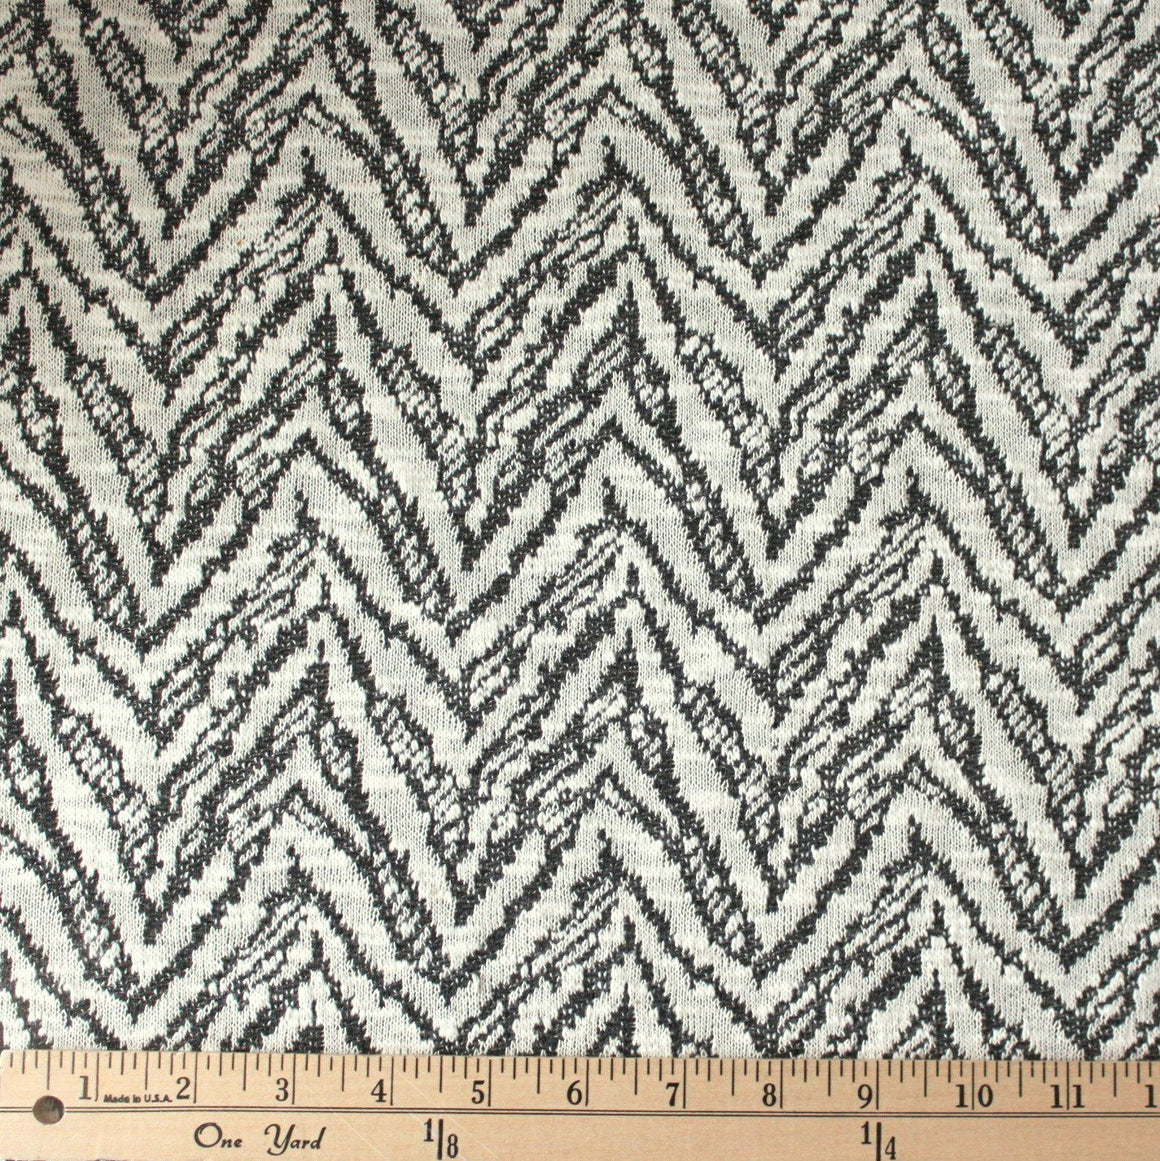 Cream and Charcoal Grey Abstract Chevron Closed Weave Sweater Knit Fabric, 1 Yard - Raspberry Creek Fabrics